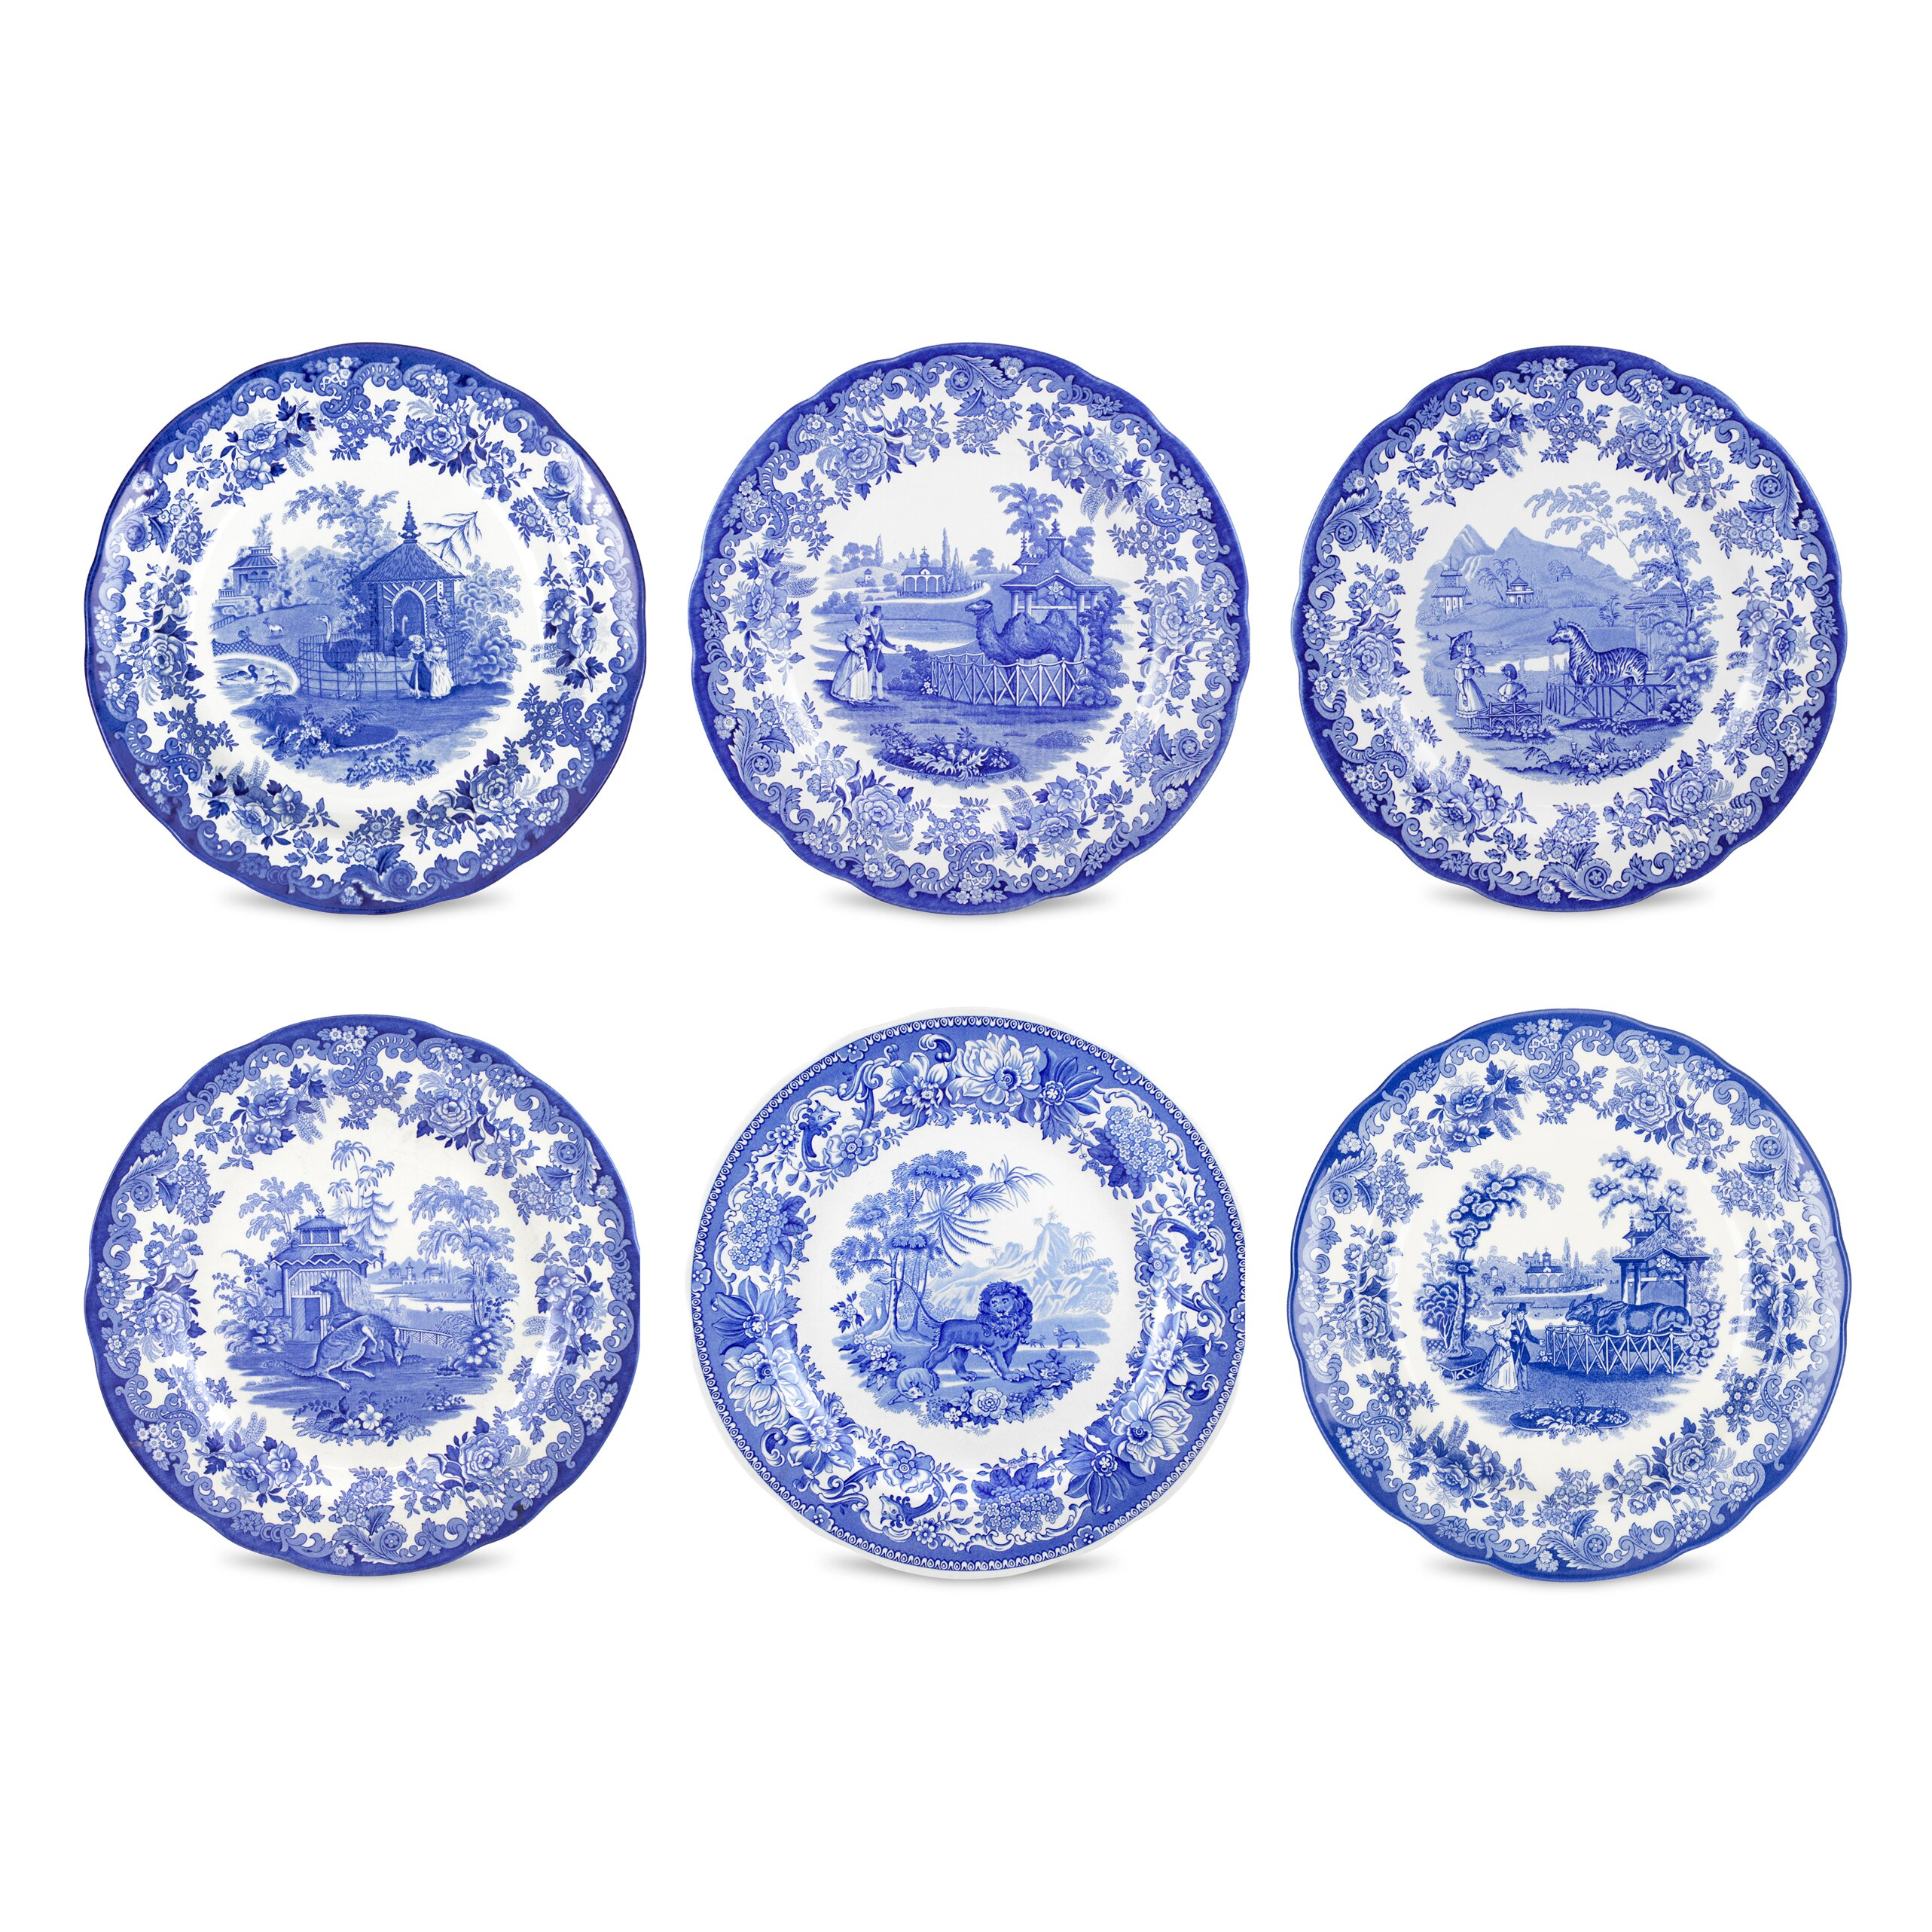 Spode Blue Room Zoological Plates